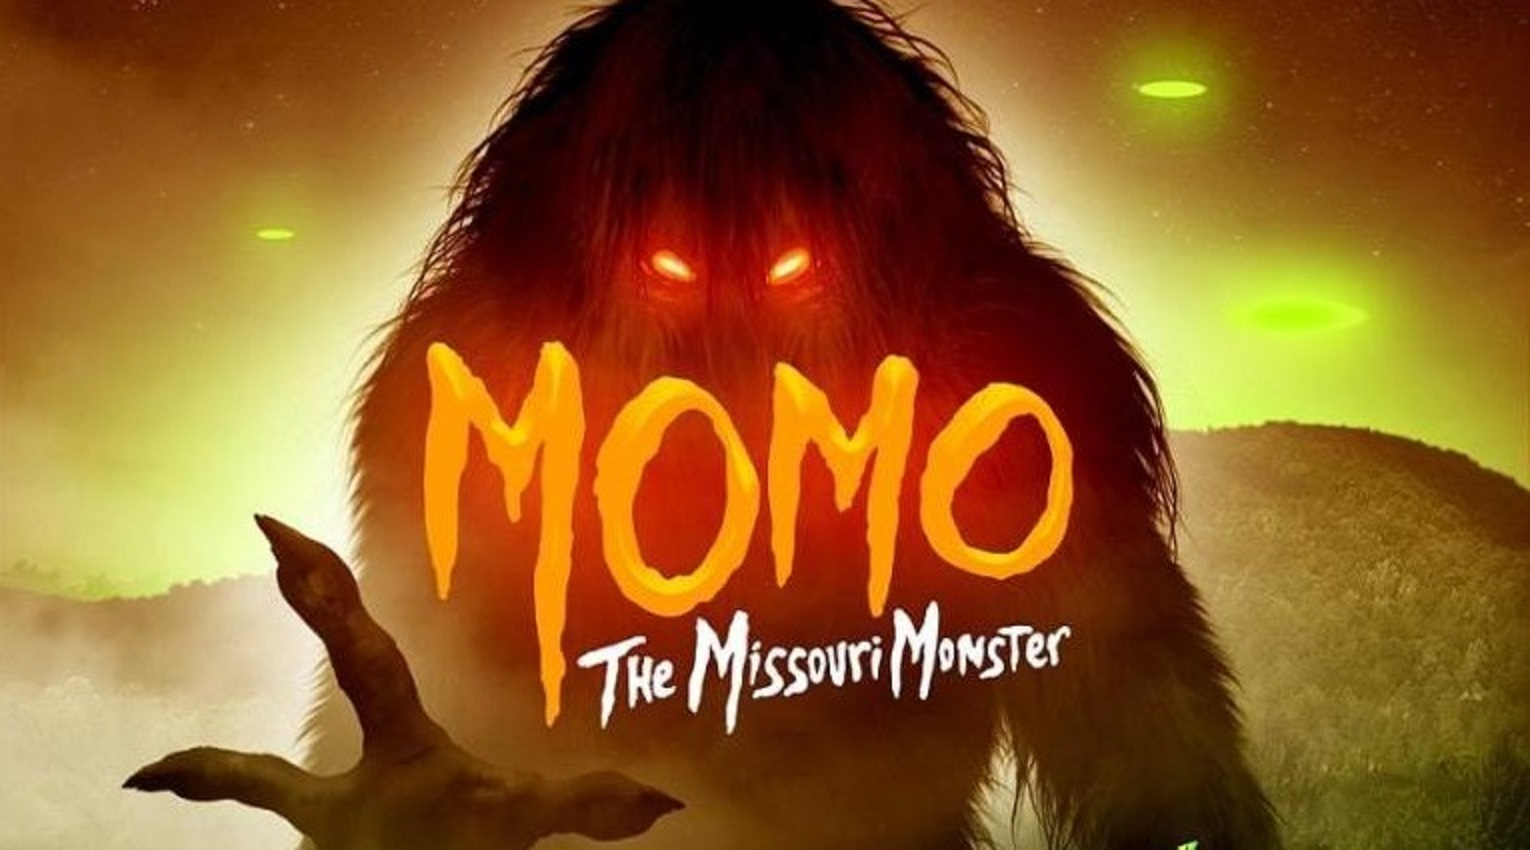 'Momo: The Missouri Monster' Film Review